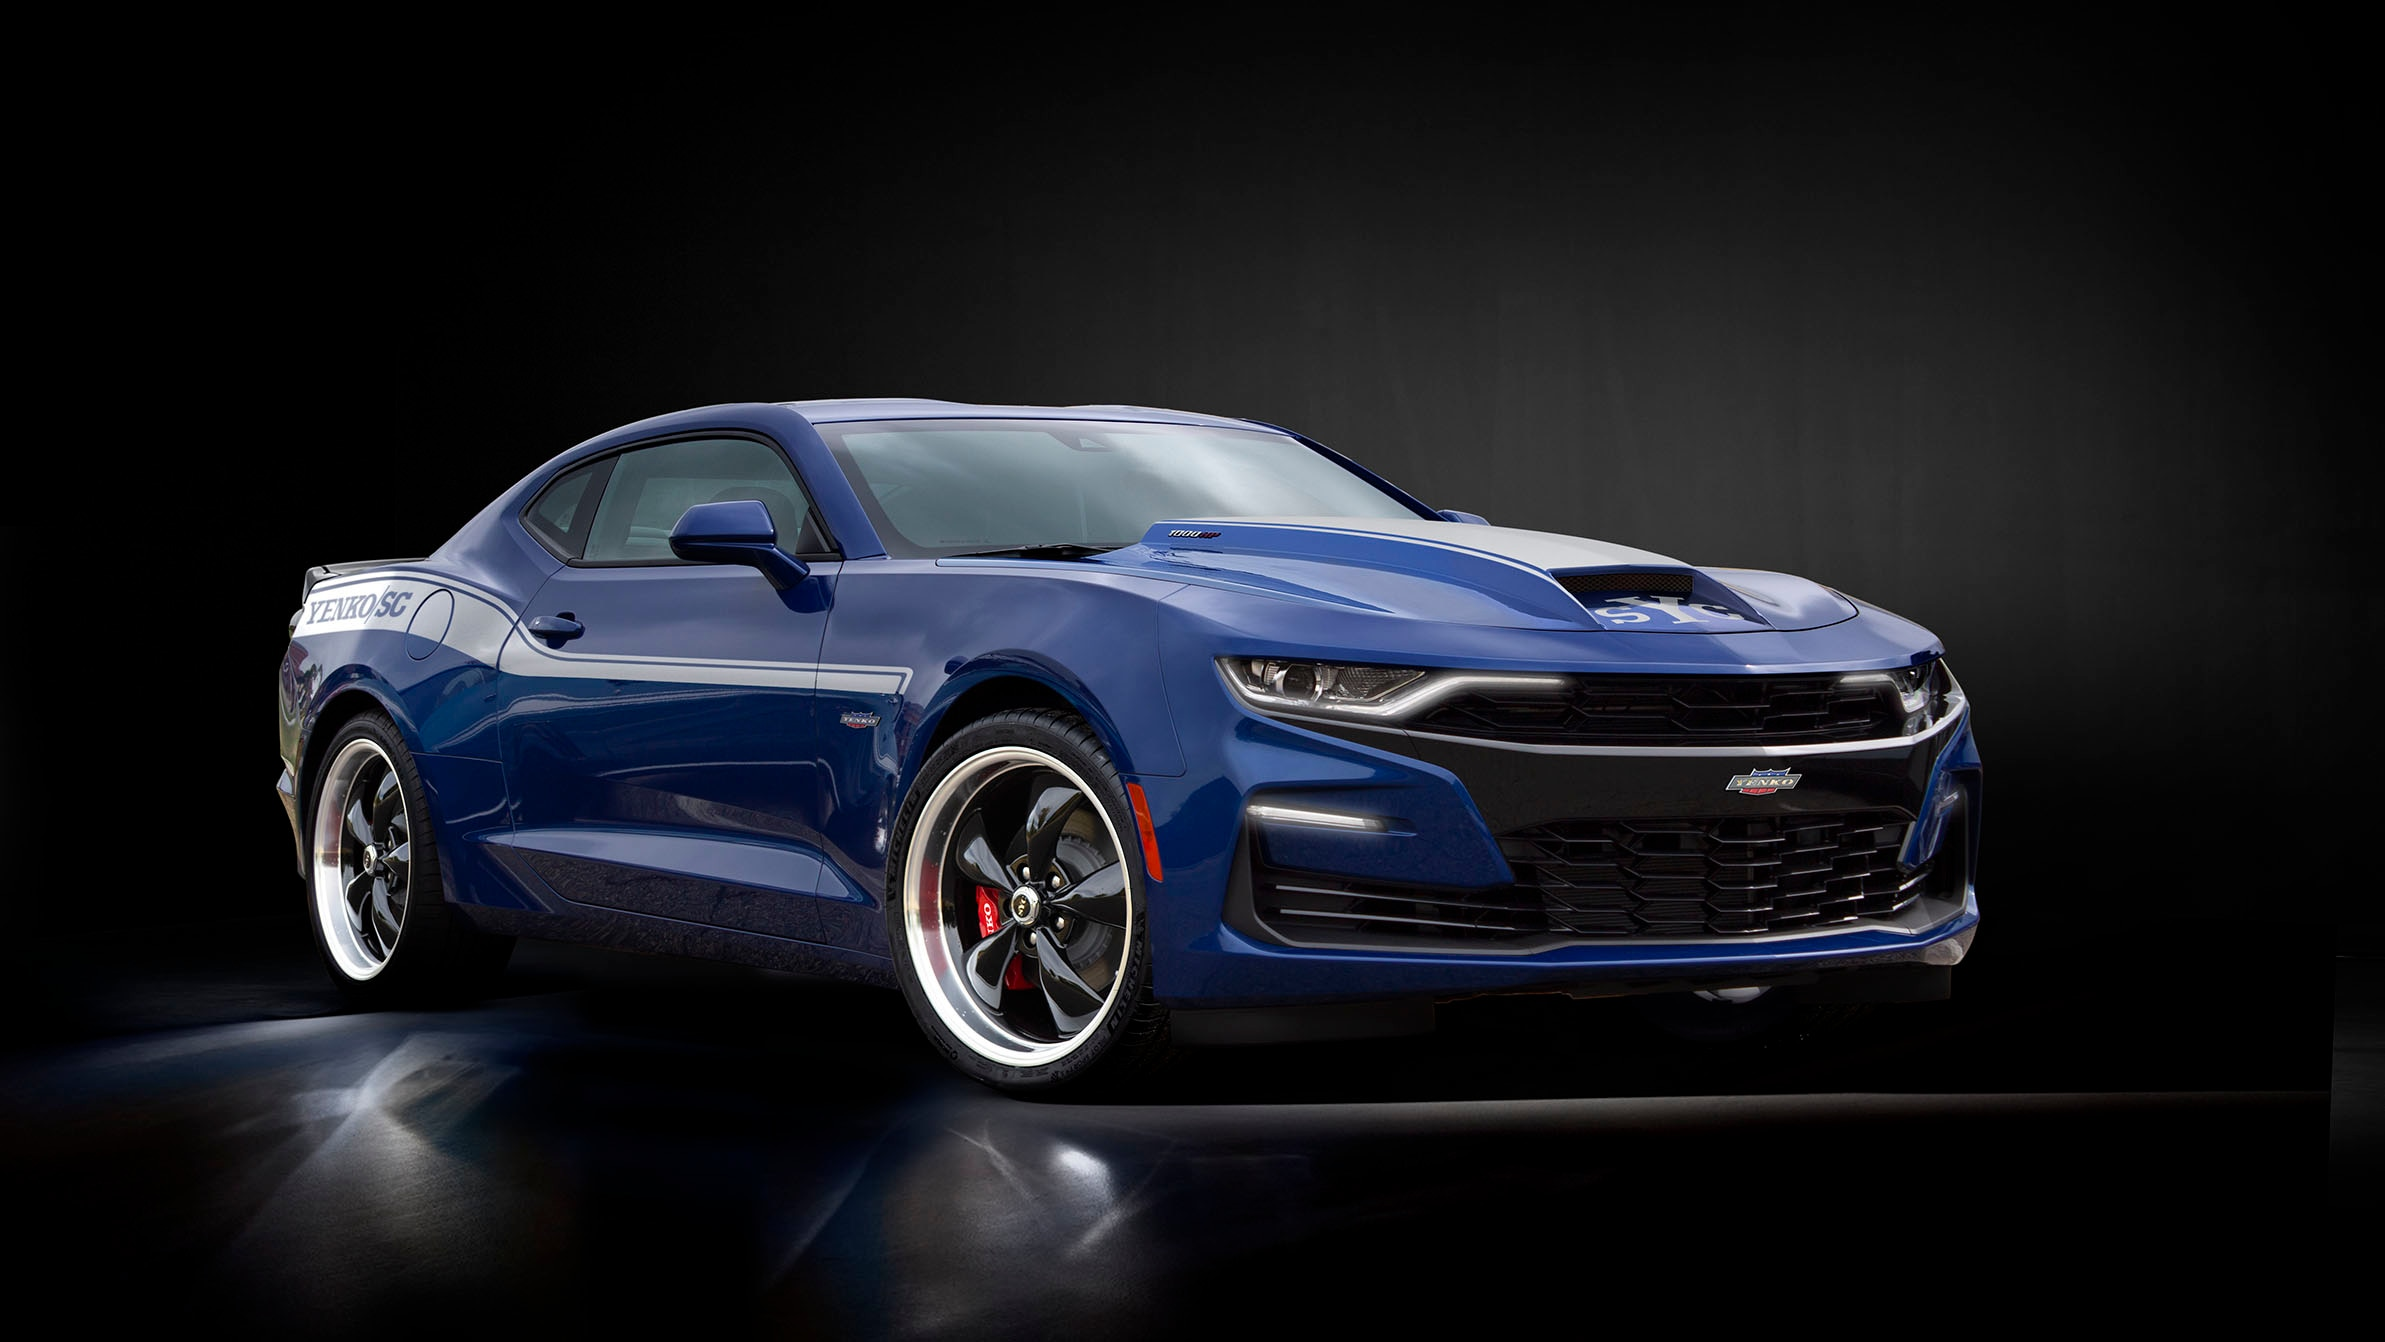 49 Best 2019 Camaro Z28 Horsepower Price Design and Review